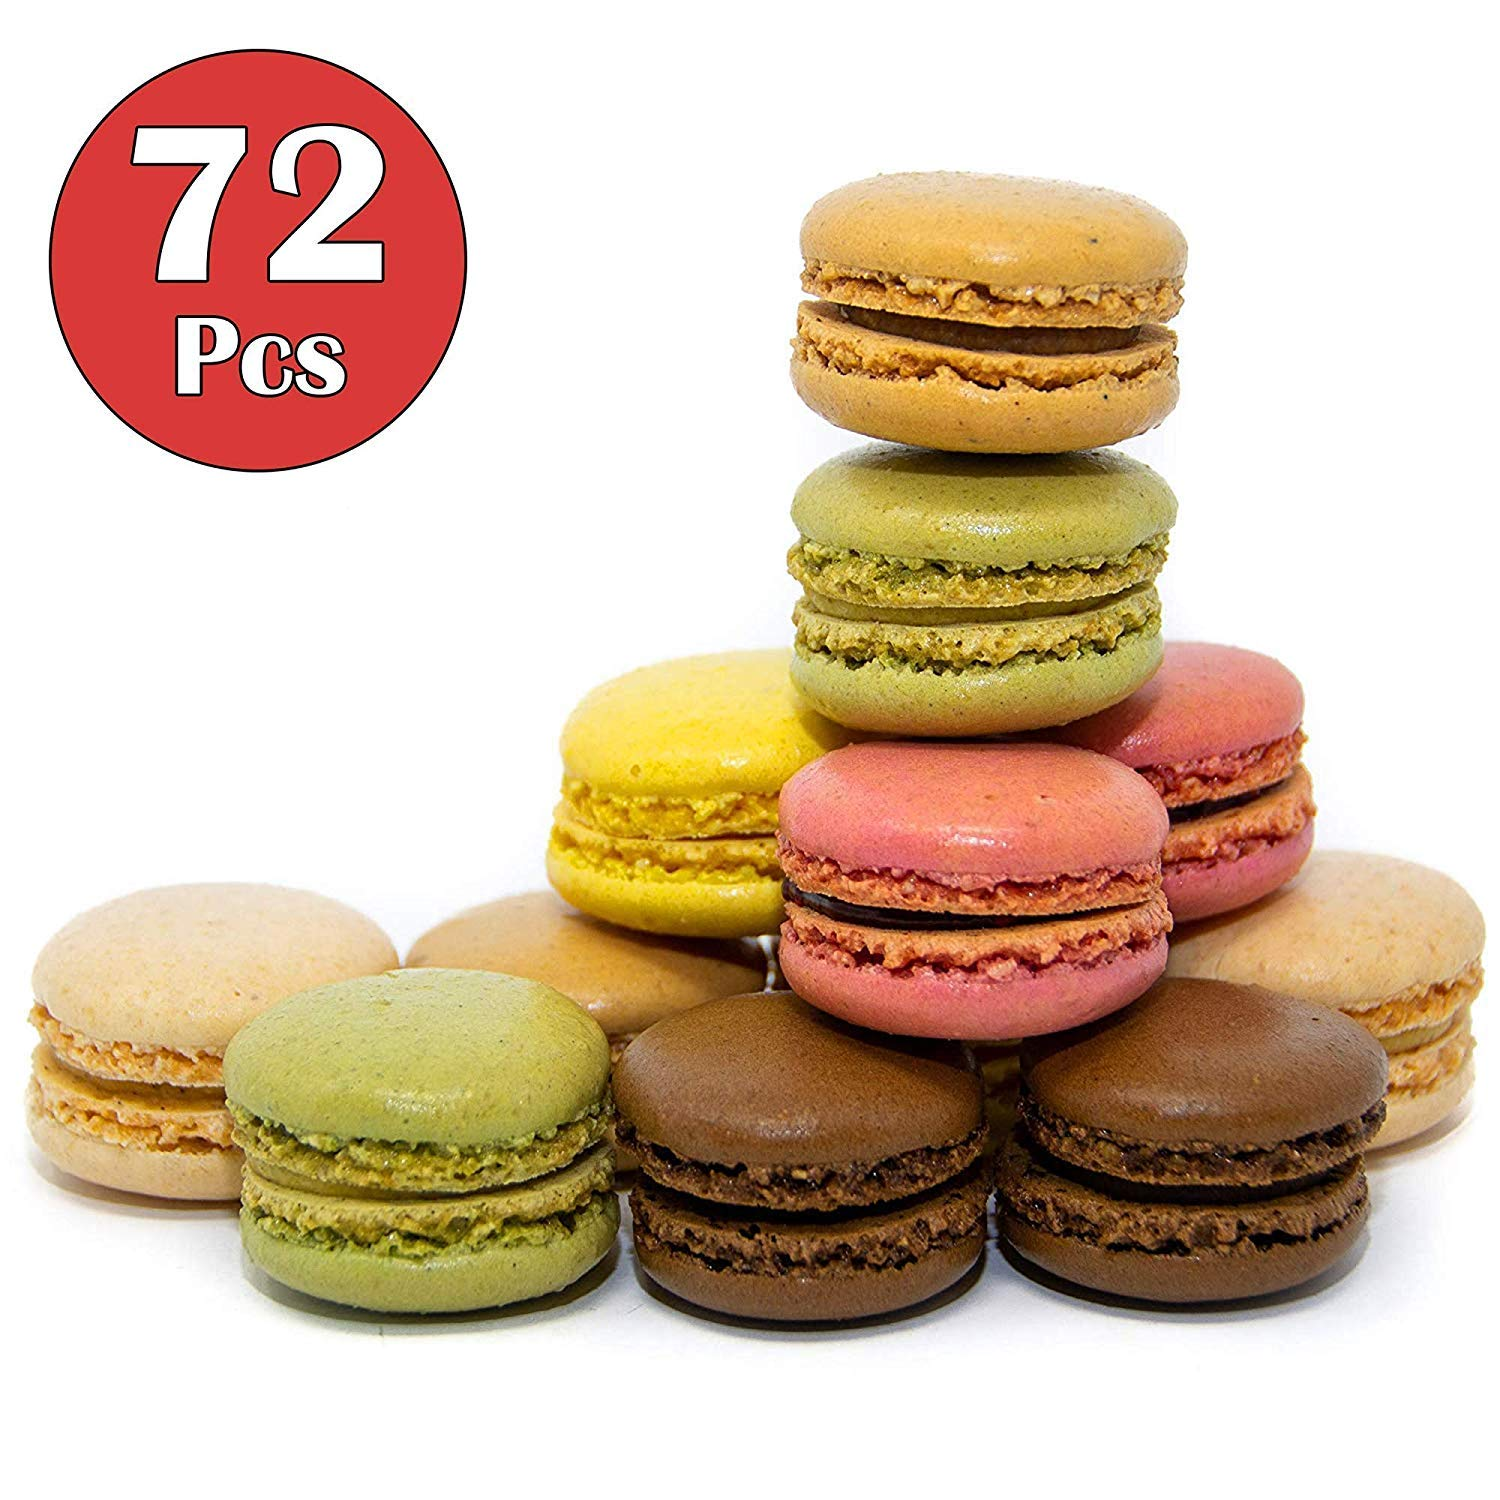 French Almond Macarons Gift - 72 pcs - Assorted Macaroons Cookies - Imported From France